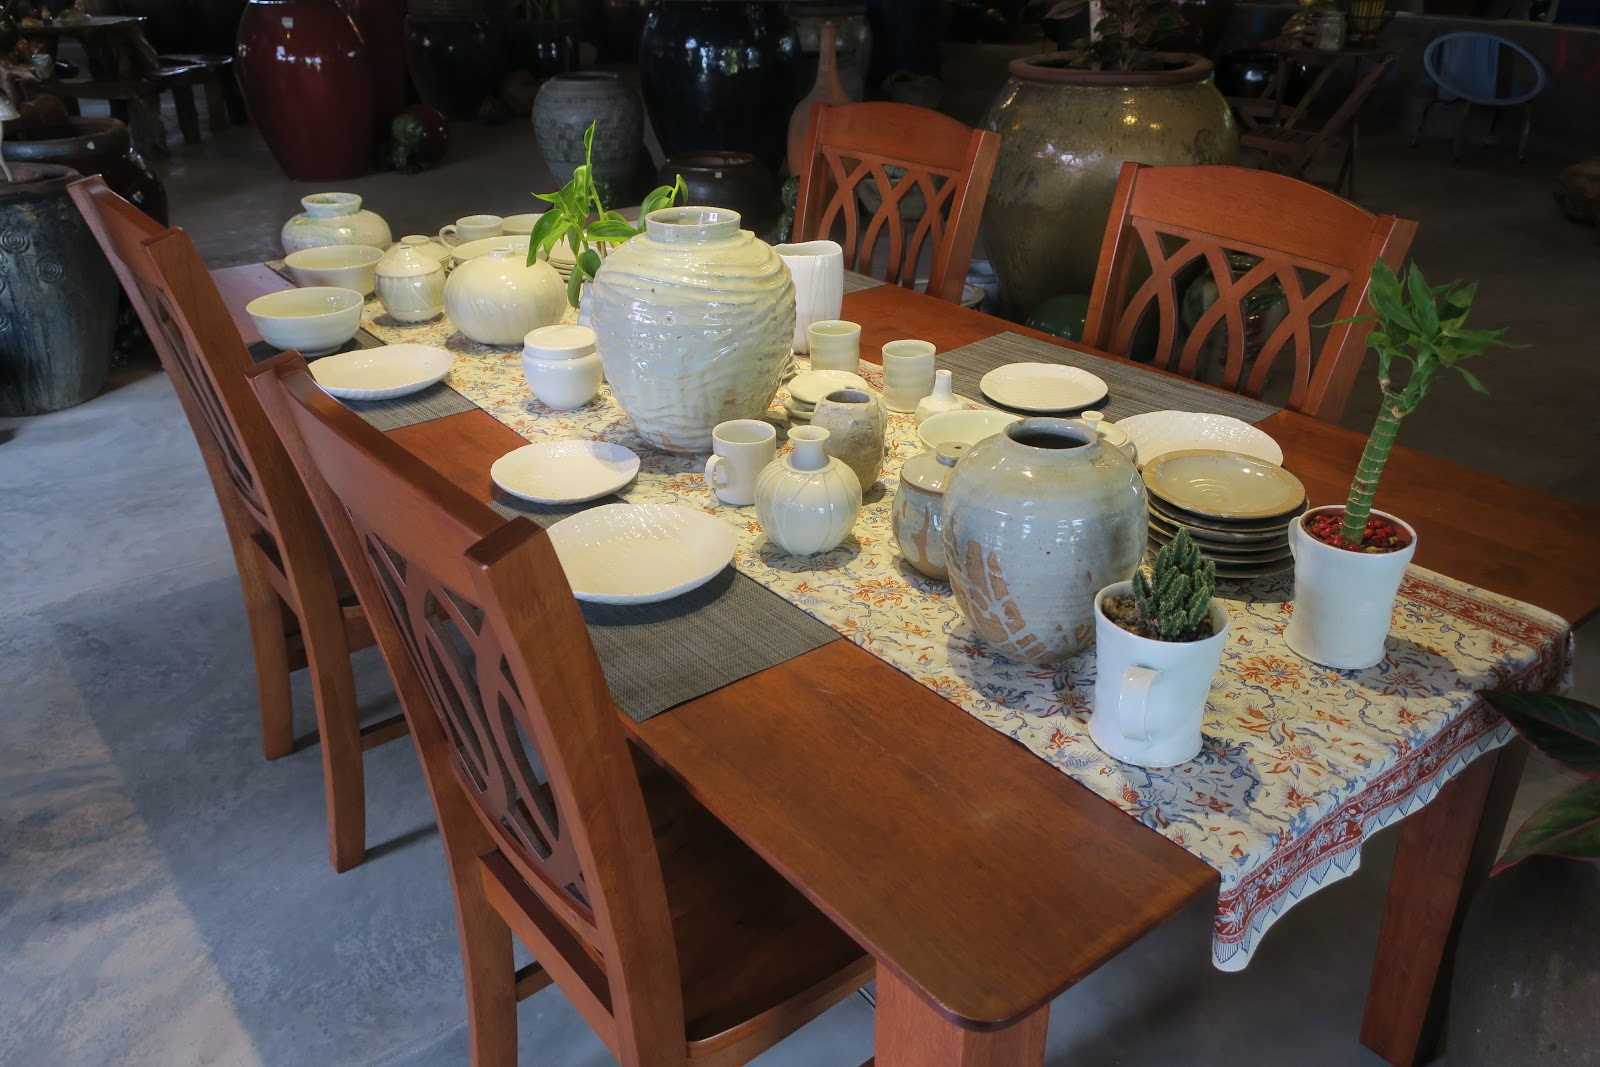 A range of handmade ceramic tableware created by Japanese guest artist, Hiroshi Taruta